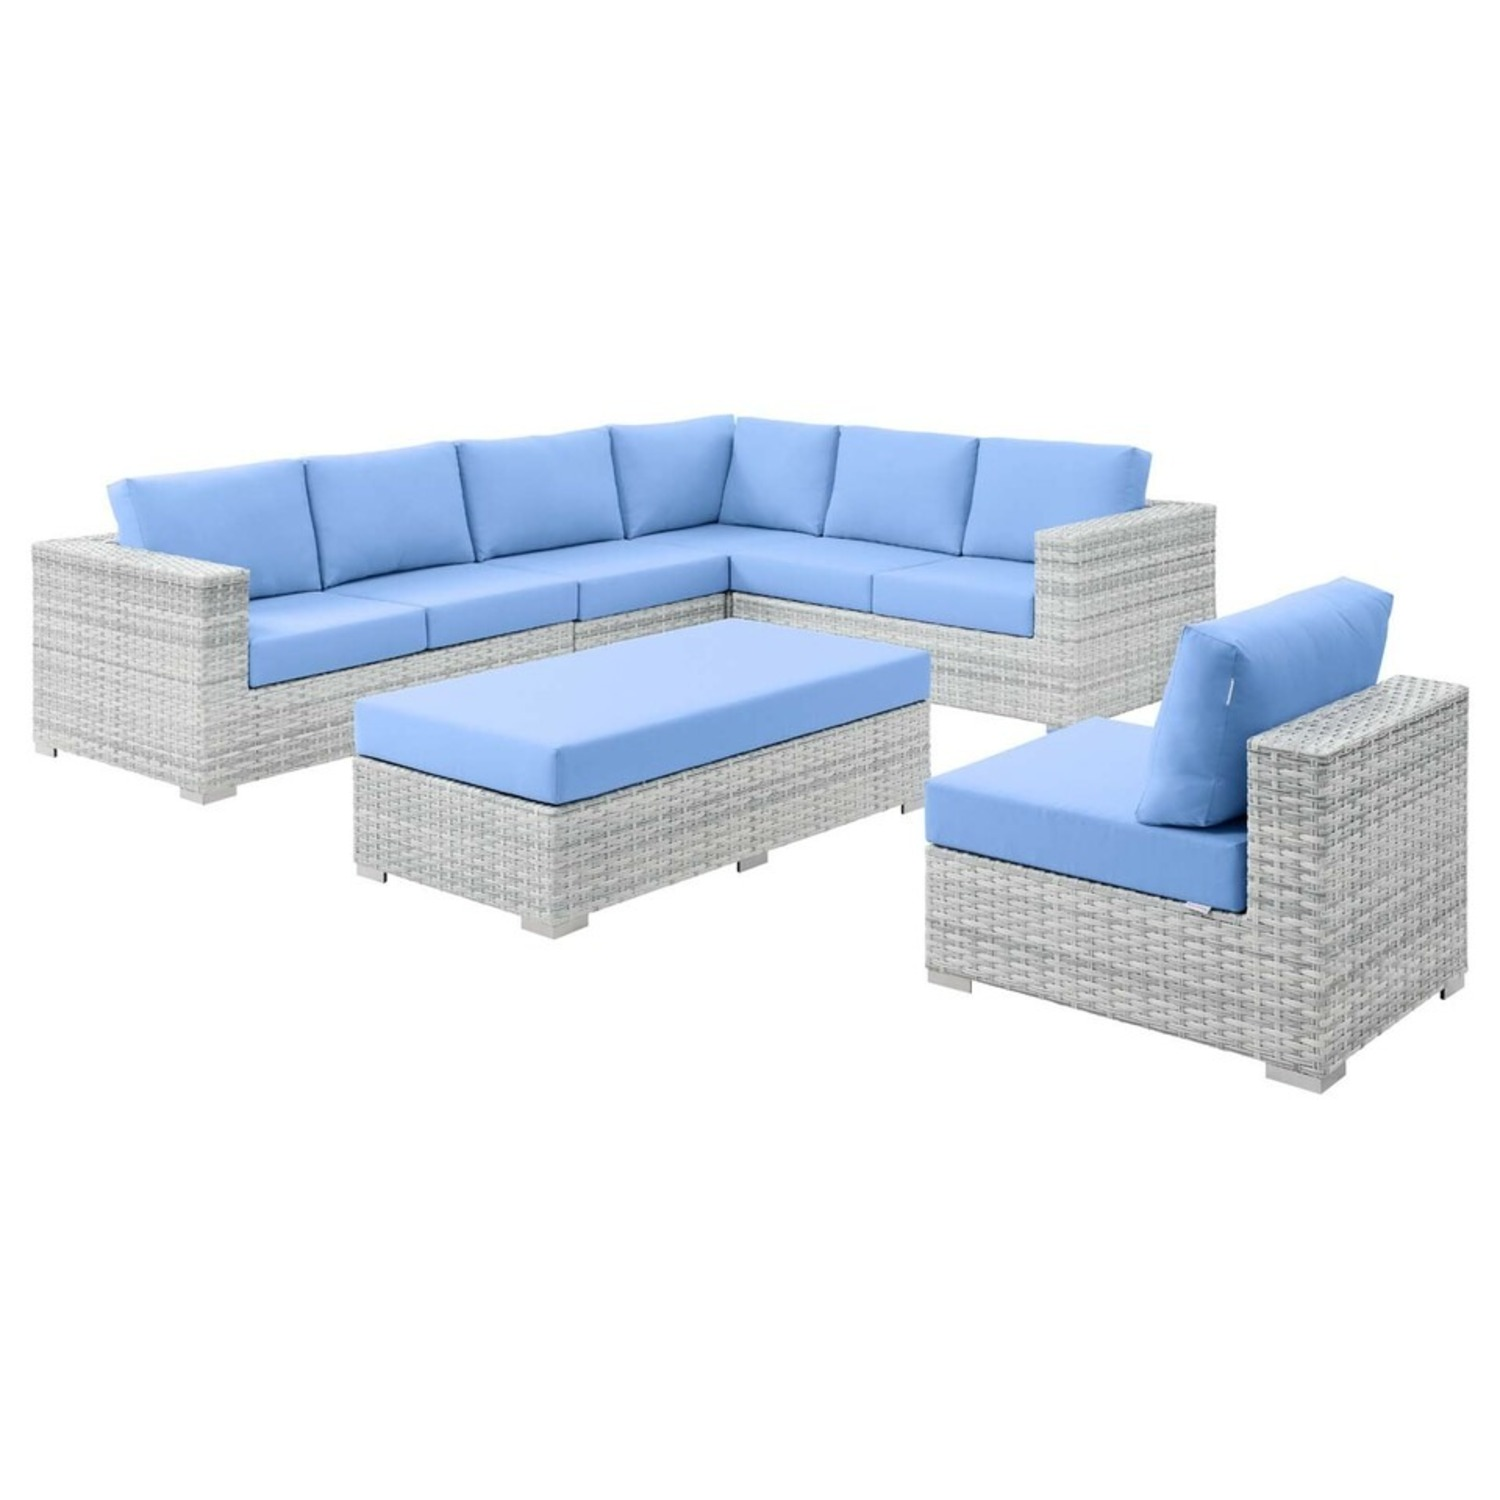 6-Piece Outdoor Patio Sectional In Light Blue Seat - image-1